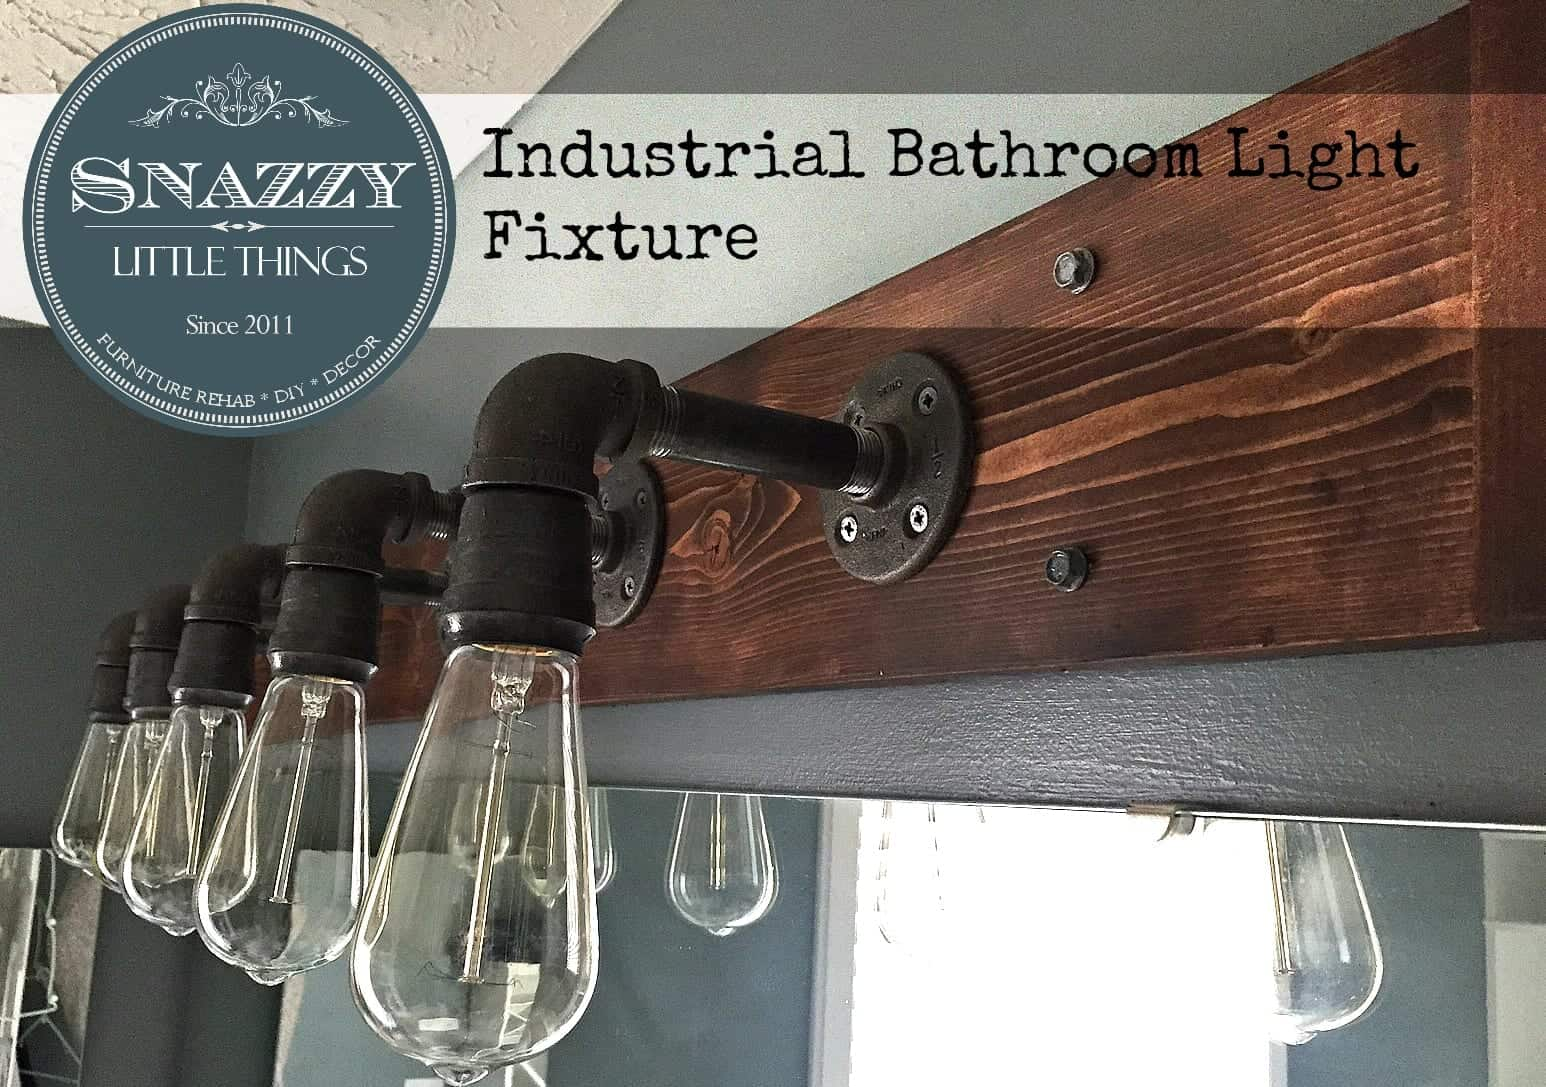 Diy industrial light for vanity diy industrial bathroom light fixture by snazzylittlethings arubaitofo Gallery